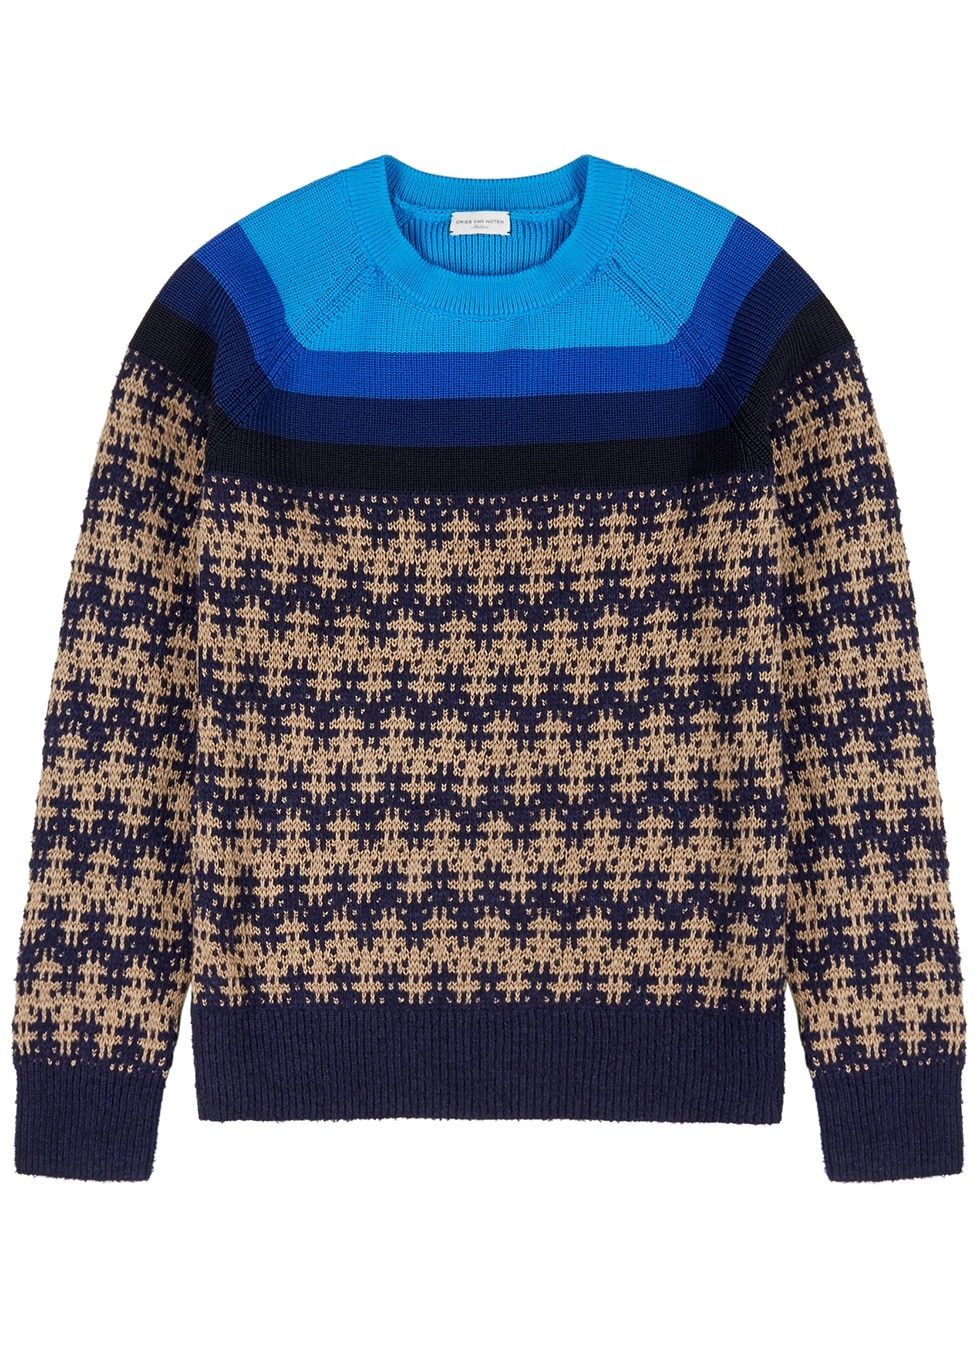 6c707f7a6b3 Men s Designer Knitwear and Jumpers - Harvey Nichols